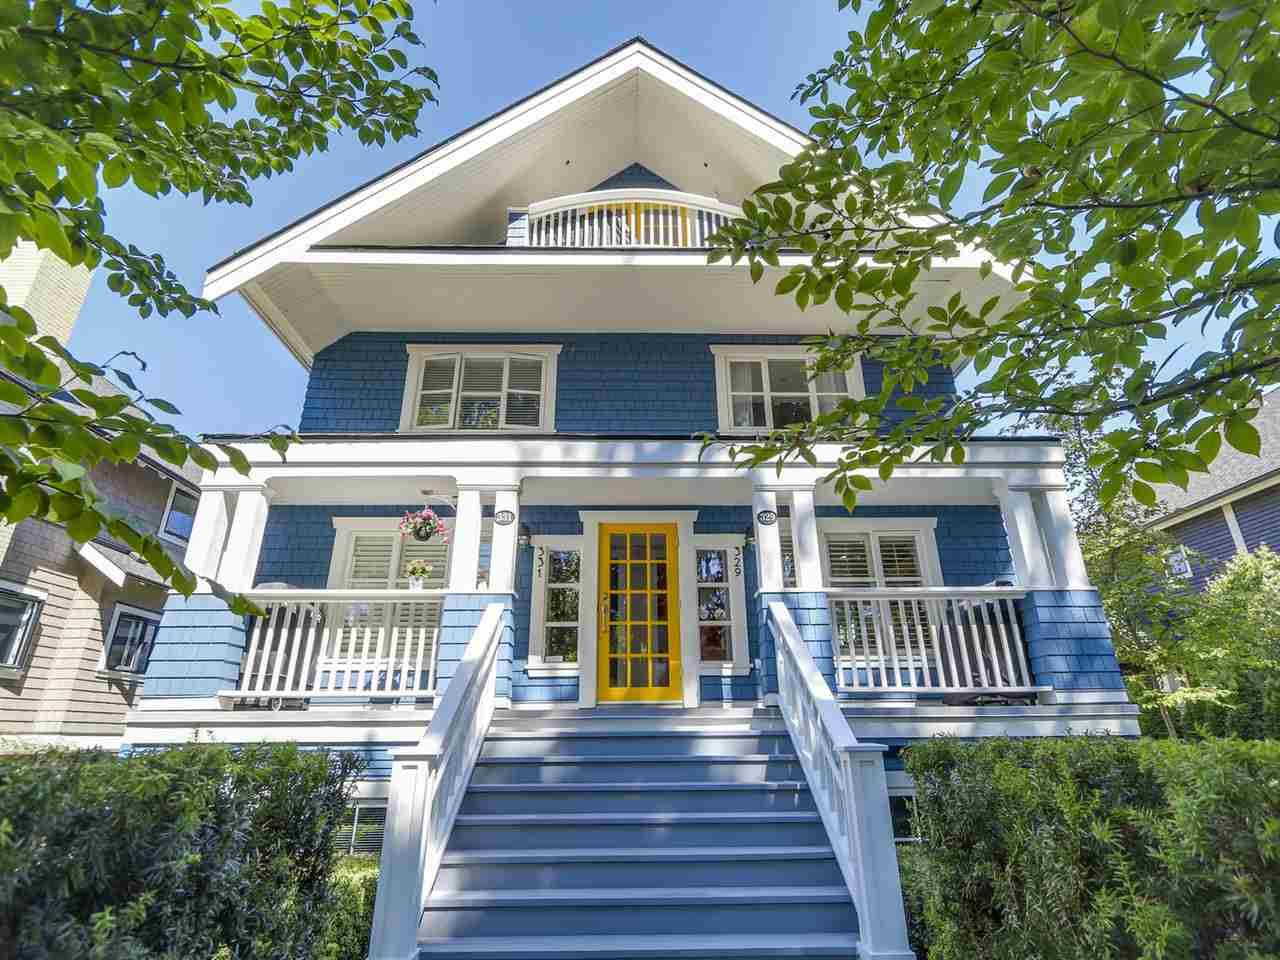 Main Photo: 329 W 15TH AVENUE in Vancouver: Mount Pleasant VW Townhouse for sale (Vancouver West)  : MLS®# R2102962